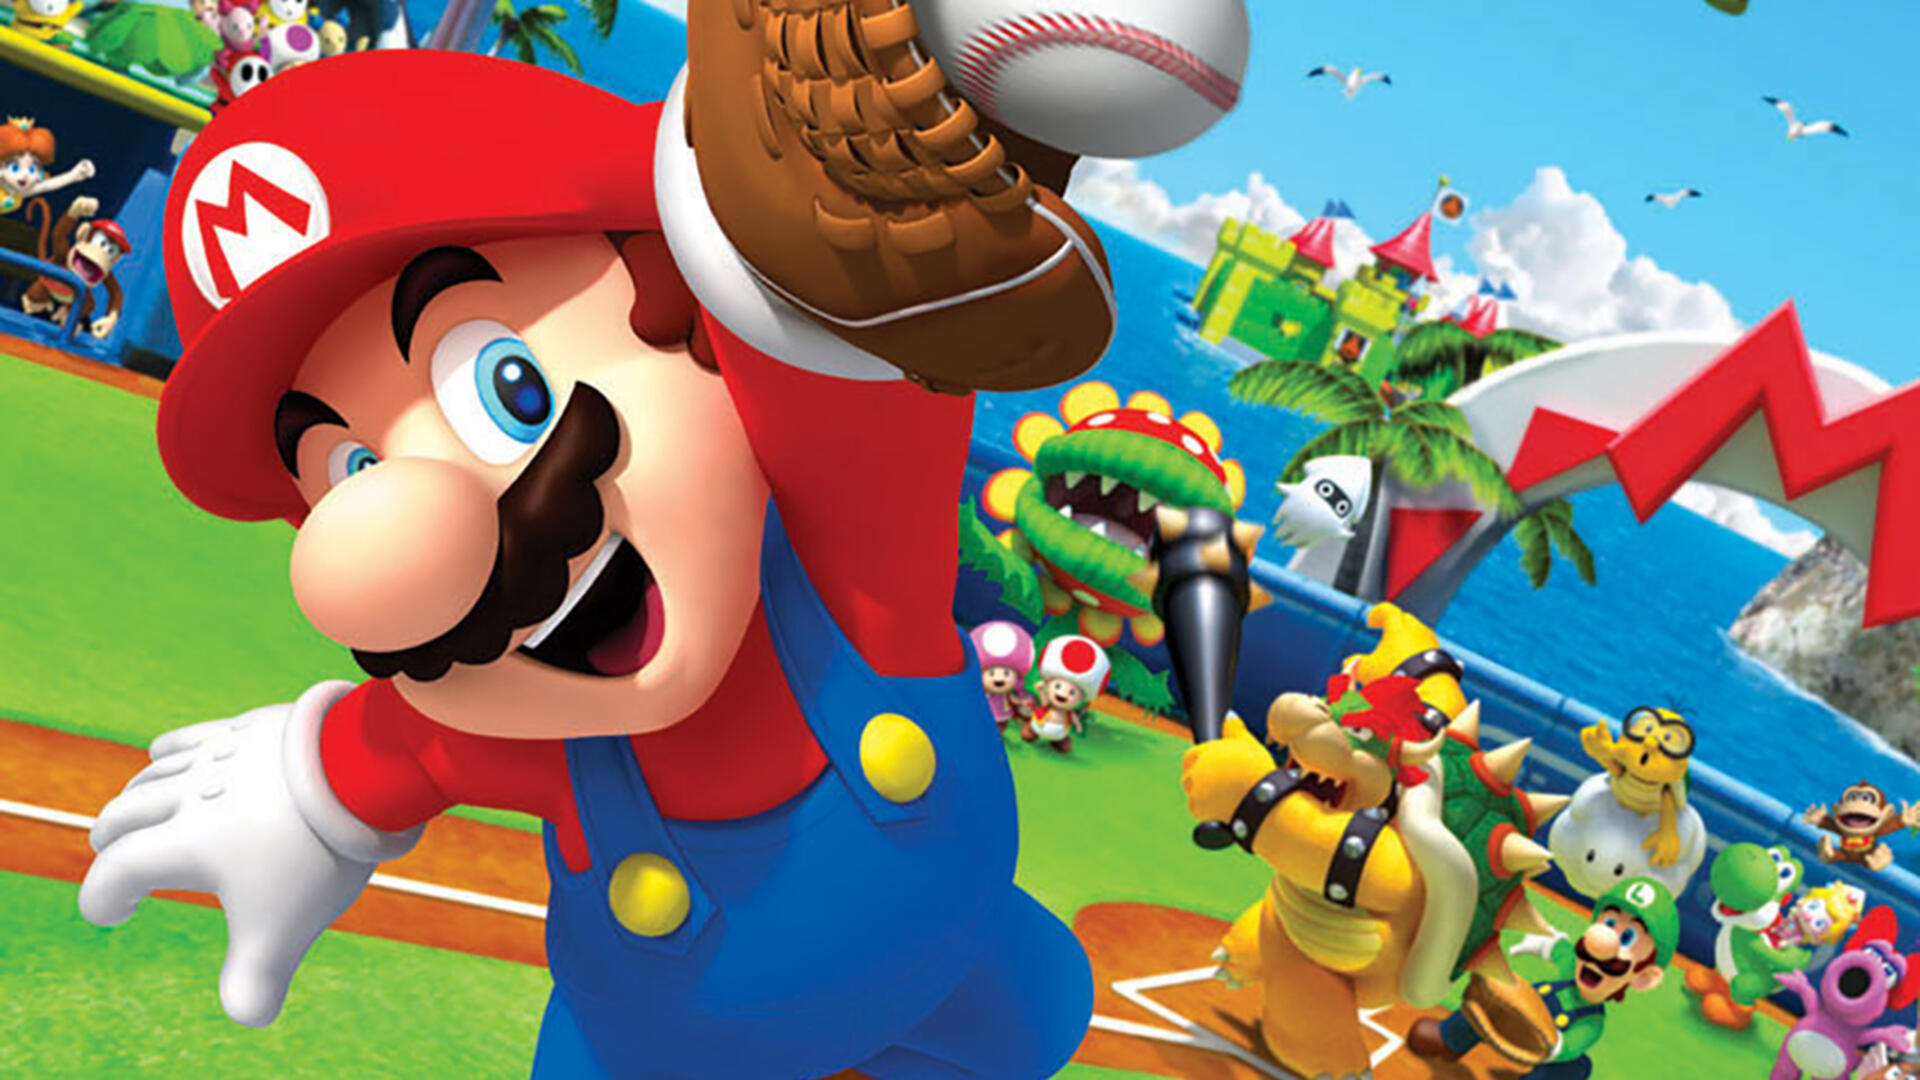 Yoshi is the GOAT: Why Hardcore Baseball Fans Have Unexpectedly Embraced the Wii's Mario Sluggers